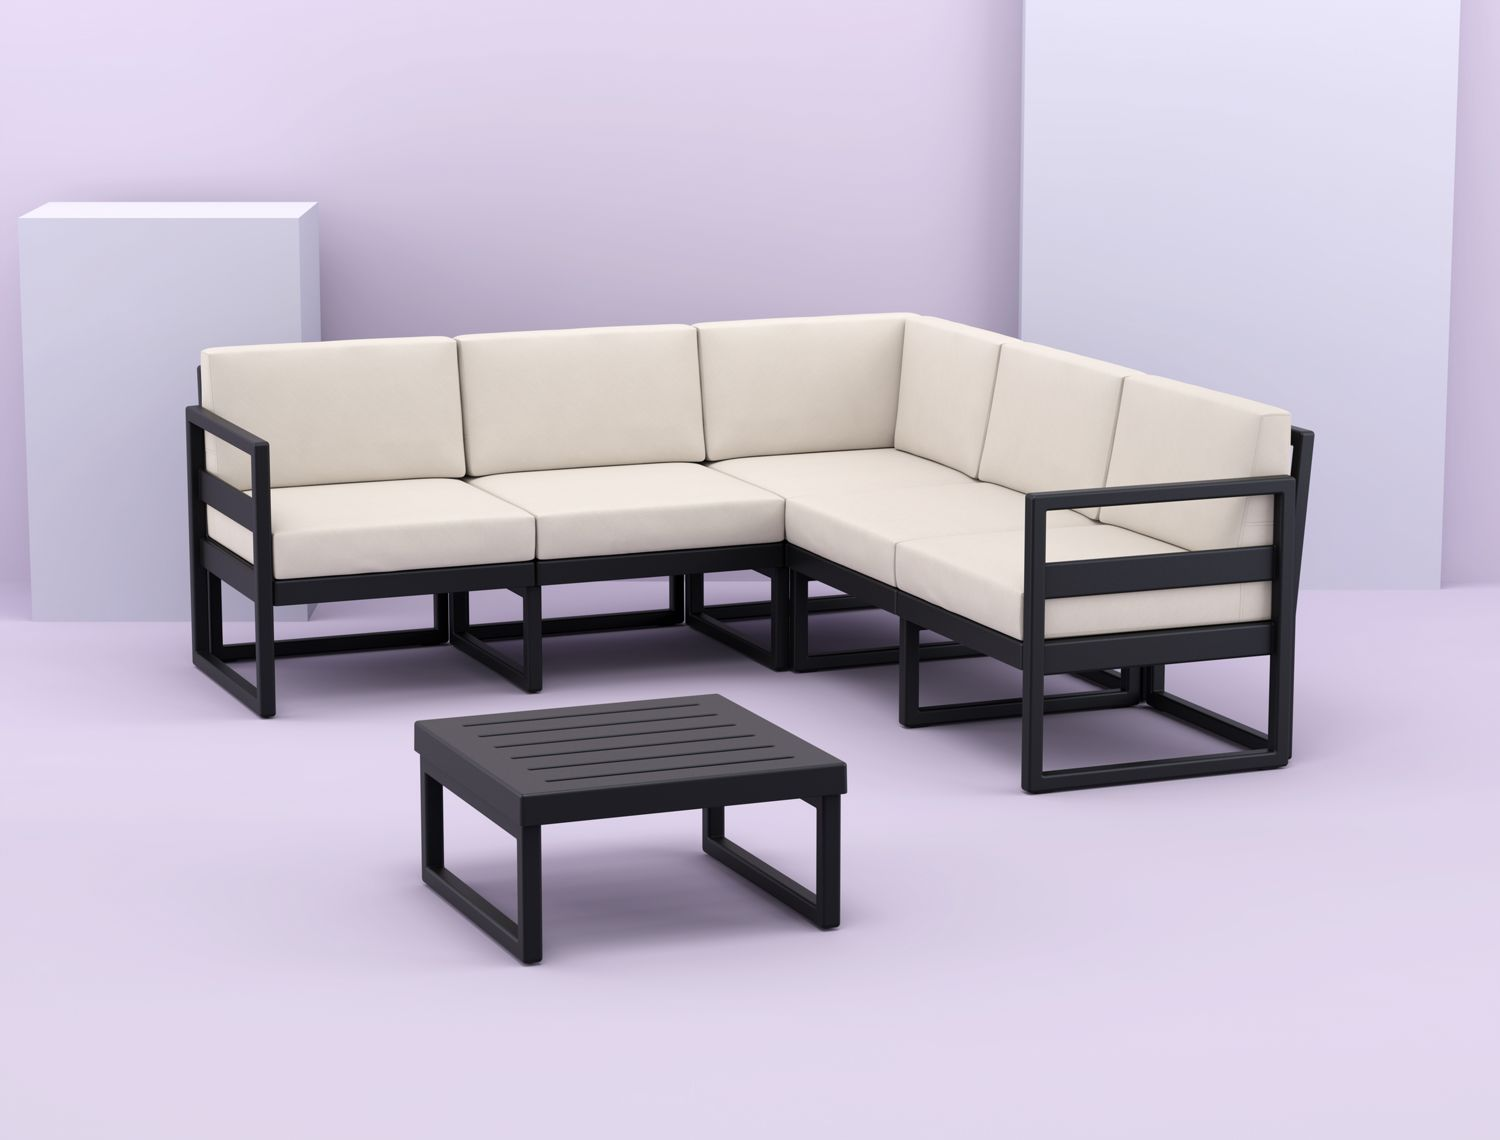 Mykonos Corner Sectional 5 Person Lounge Set Taupe with Sunbrella Charcoal Cushion ISP134-DVR-CCH - 1